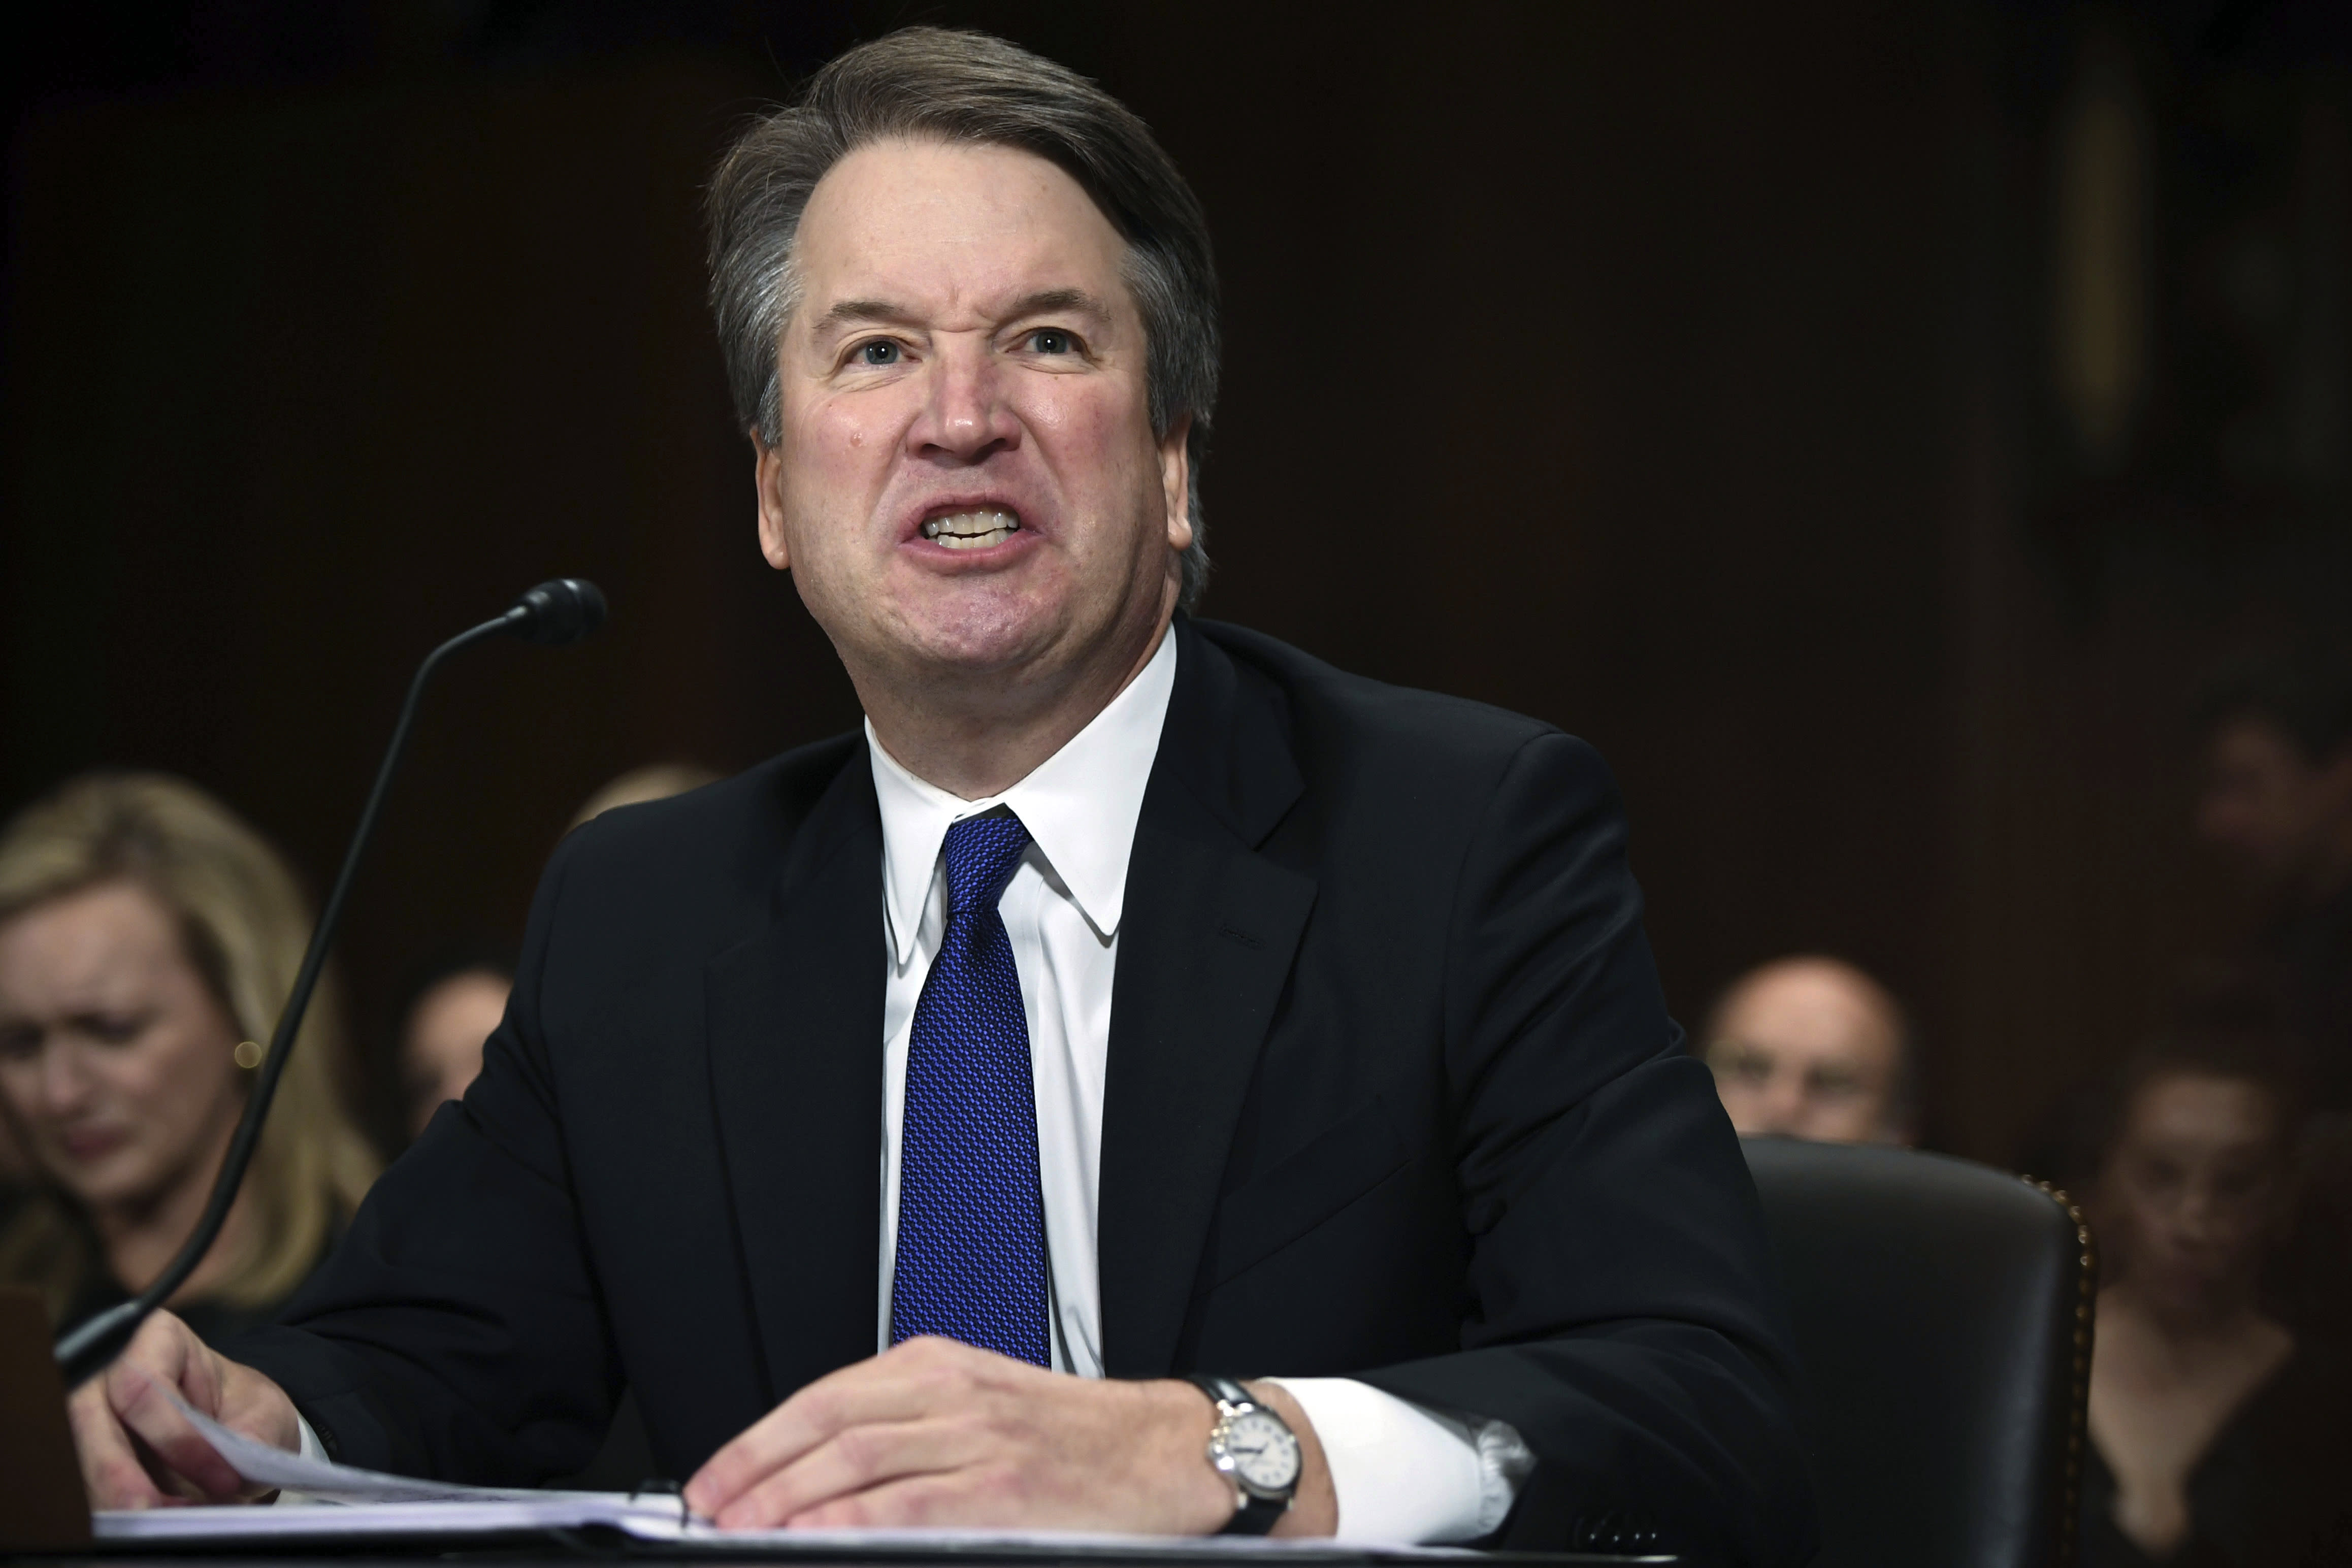 <p>Supreme Court nominee Judge Brett Kavanaugh gives his opening statement before the Senate Judiciary Committee, Thursday, Sept. 27, 2018 on Capitol Hill in Washington. (Photo: Saul Loeb/Pool Image via AP) </p>